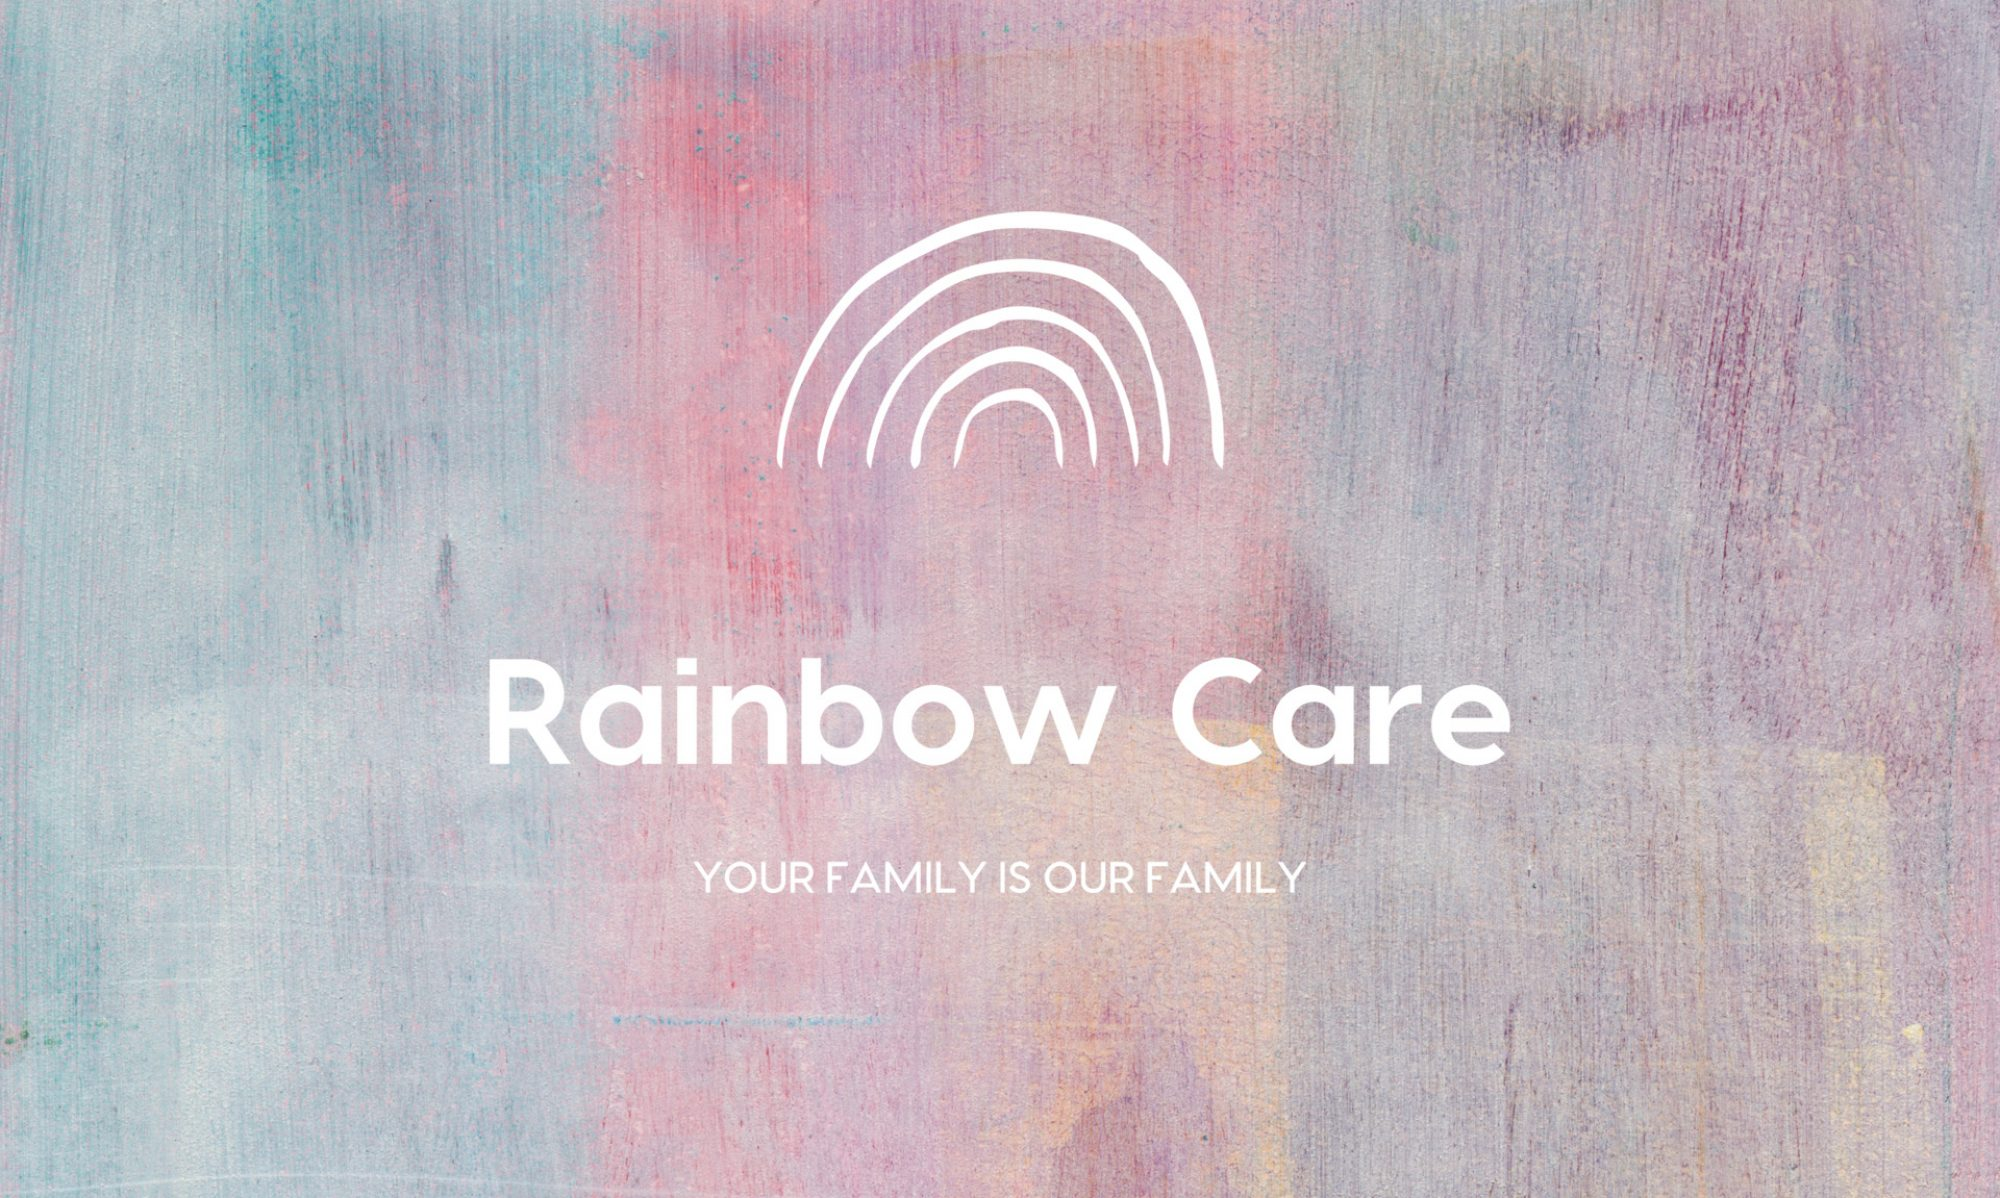 Rainbow Care Home Services